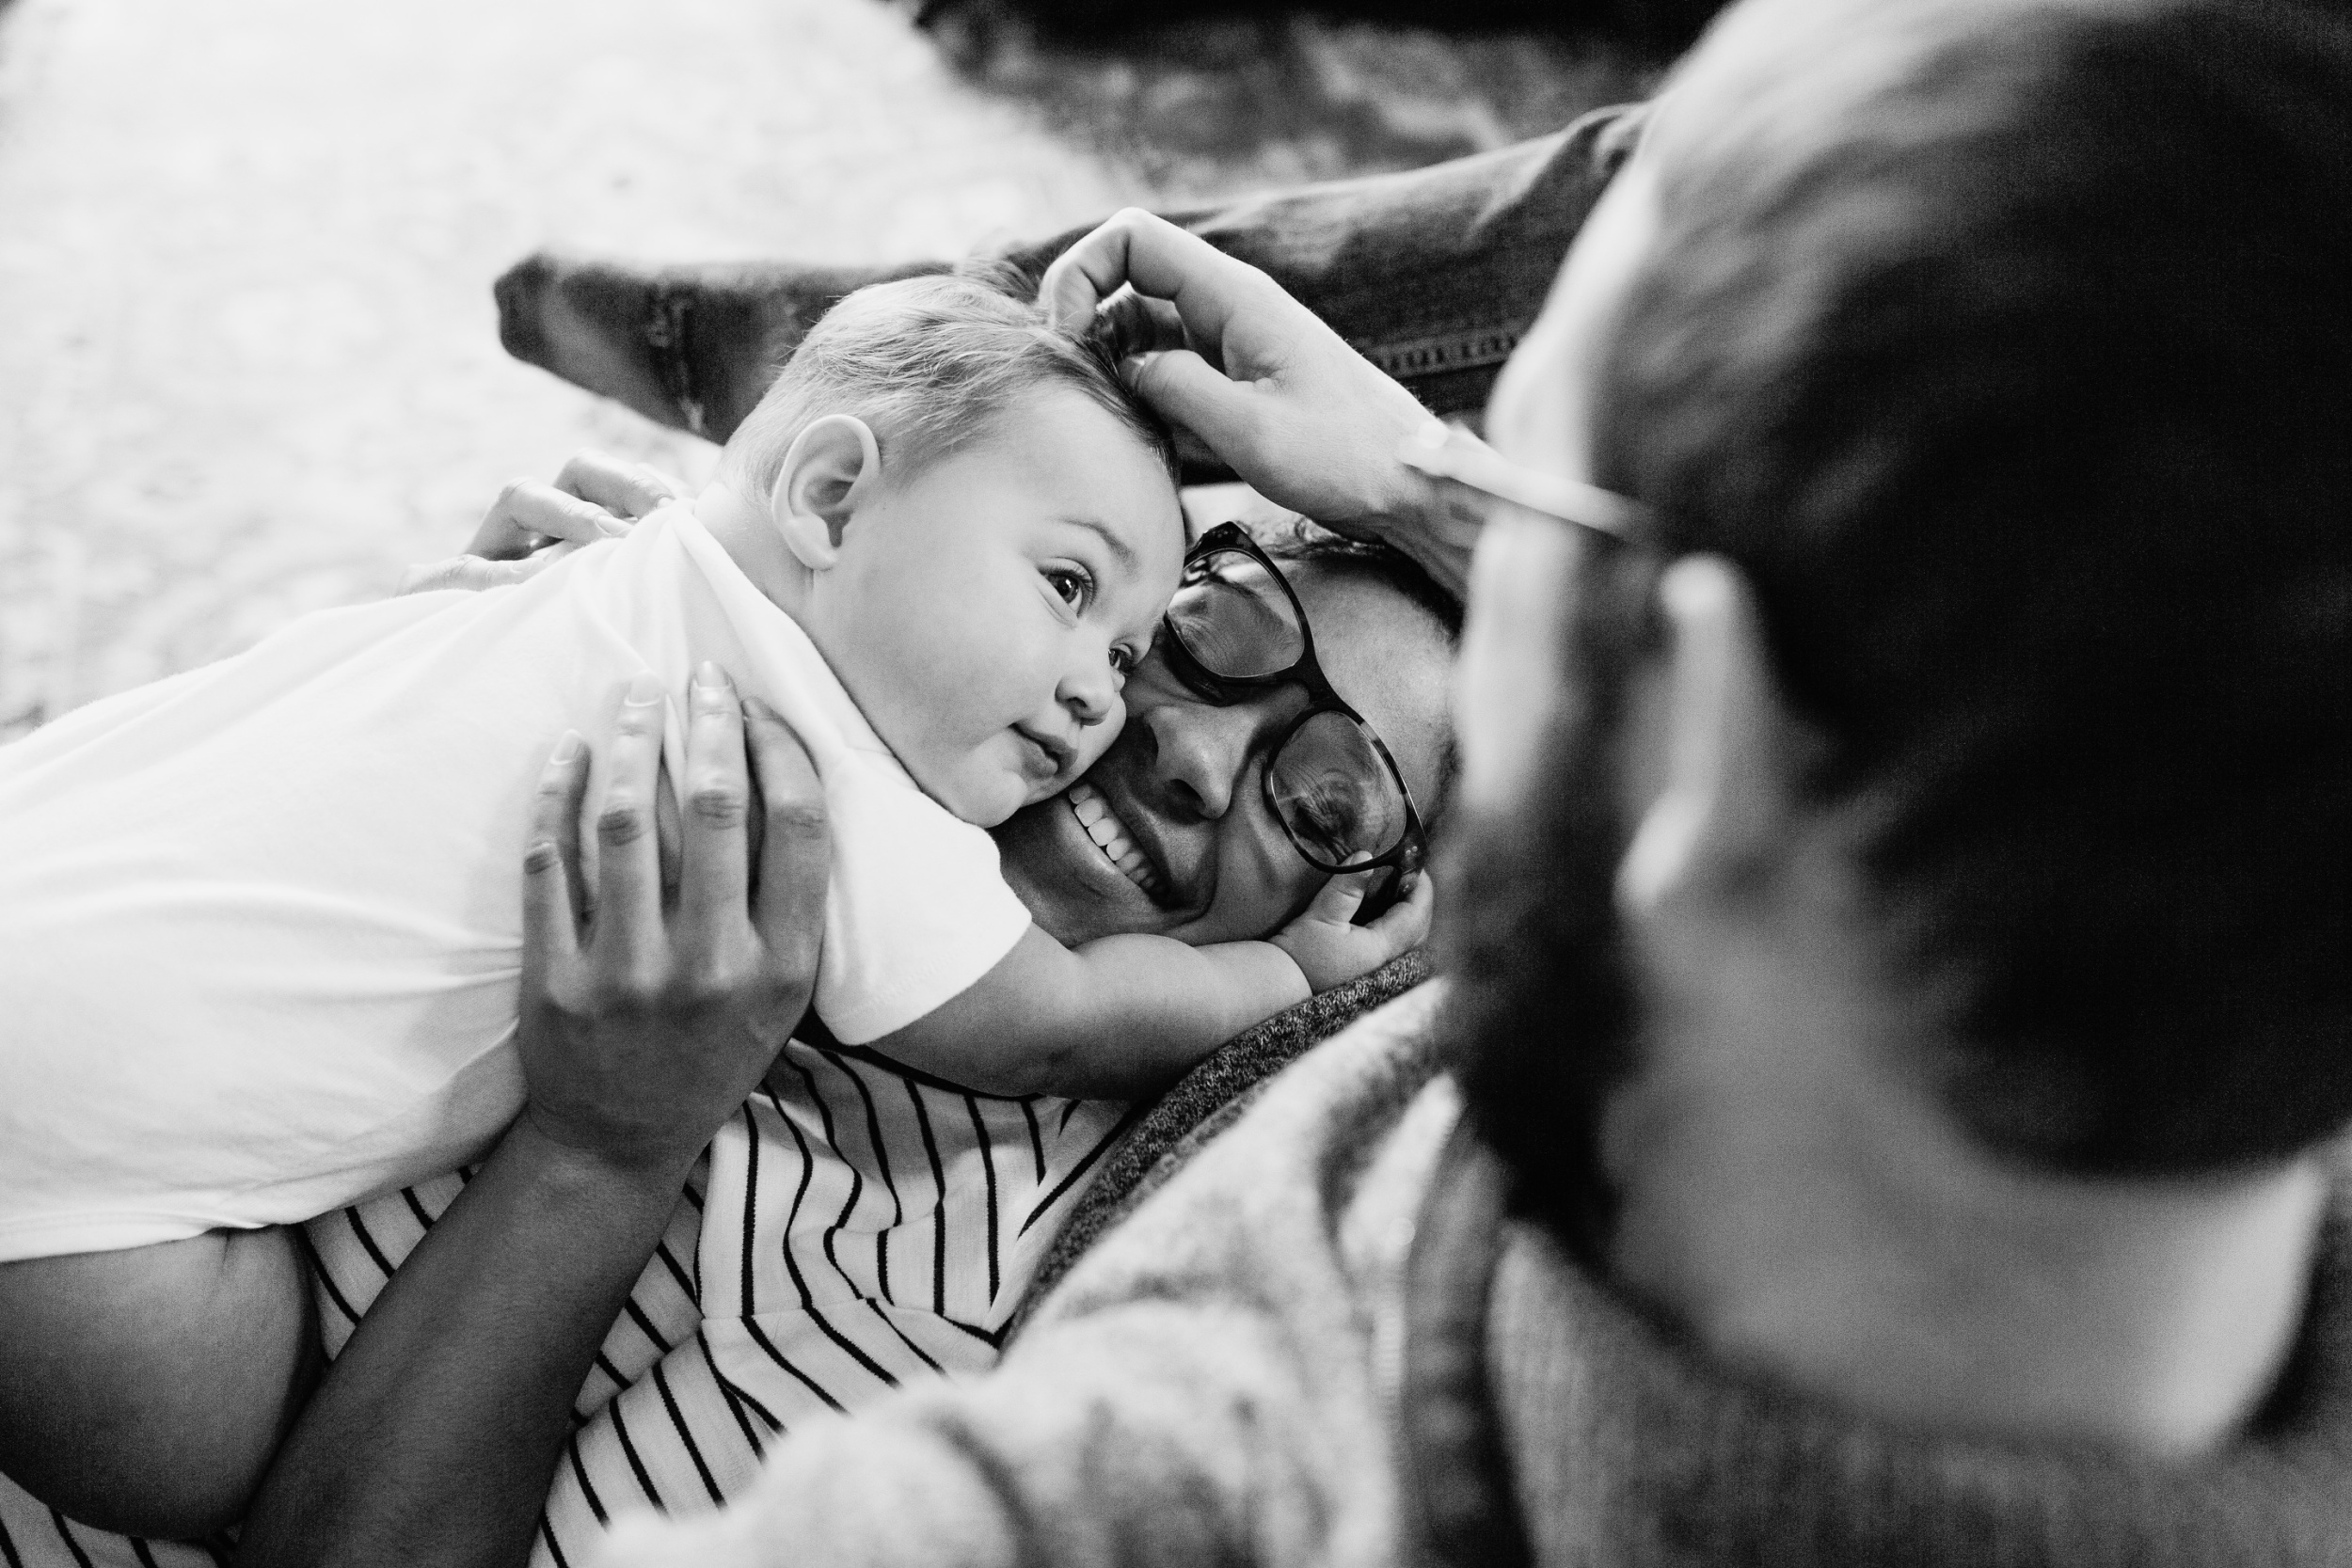 oklahoma-family-newborn-photography-baby-milestone-lifestyle-black-white-photo.jpg